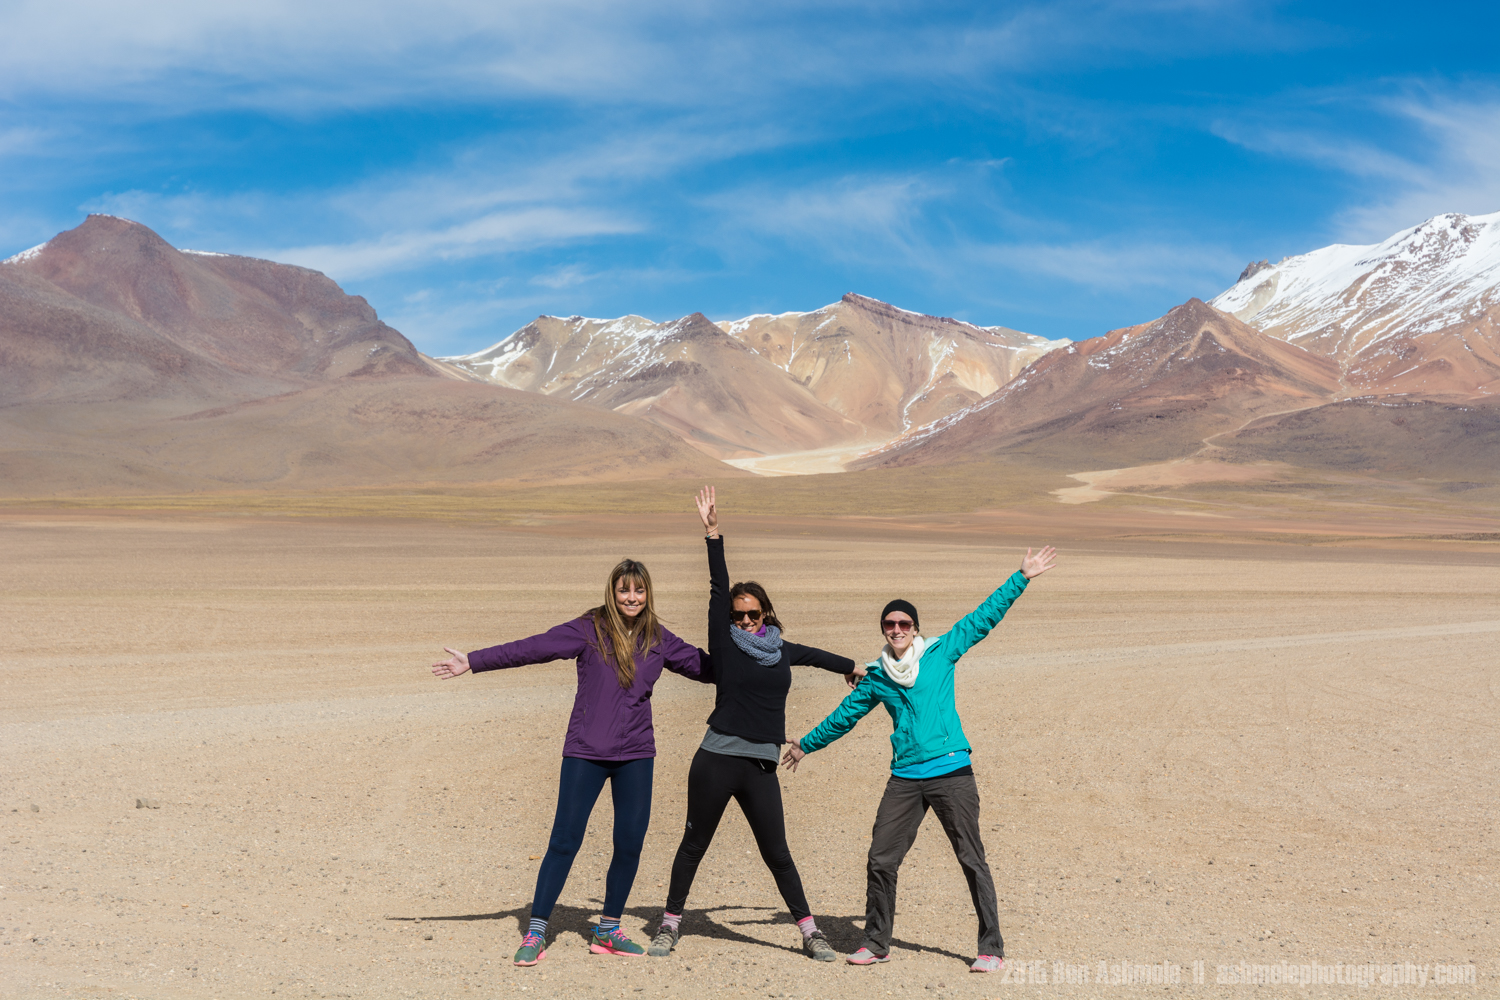 Tour Group In The Desert 2, Bolivian Highlands